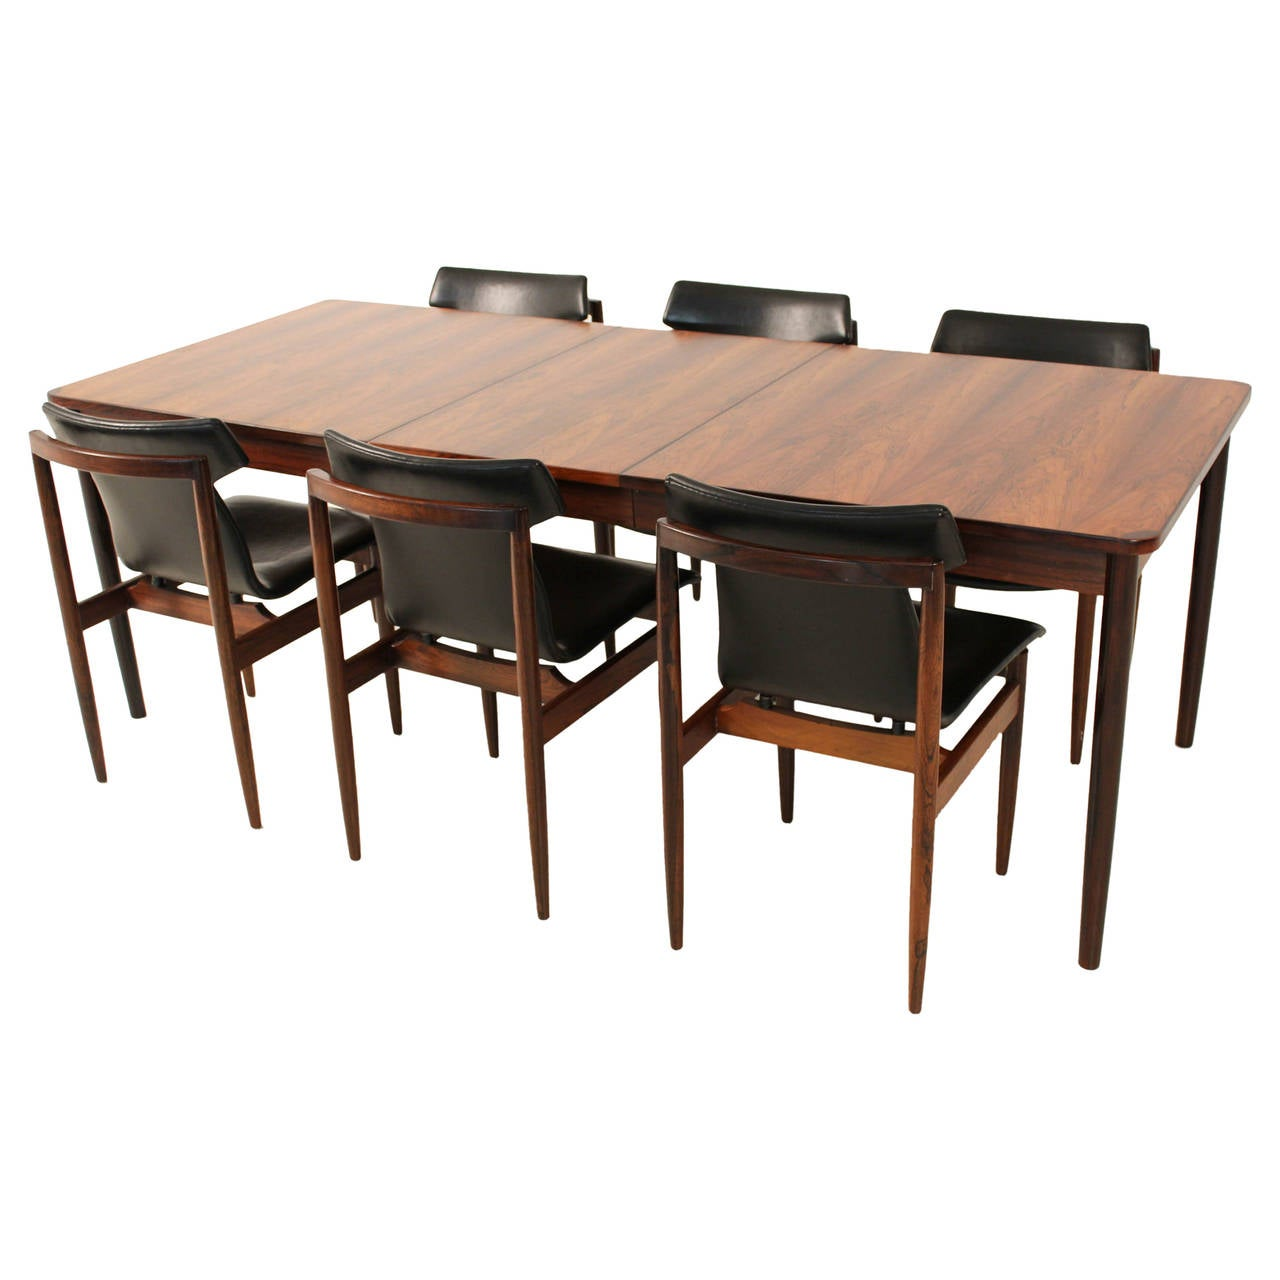 mid century modern dining table by fristho at 1stdibs. Black Bedroom Furniture Sets. Home Design Ideas